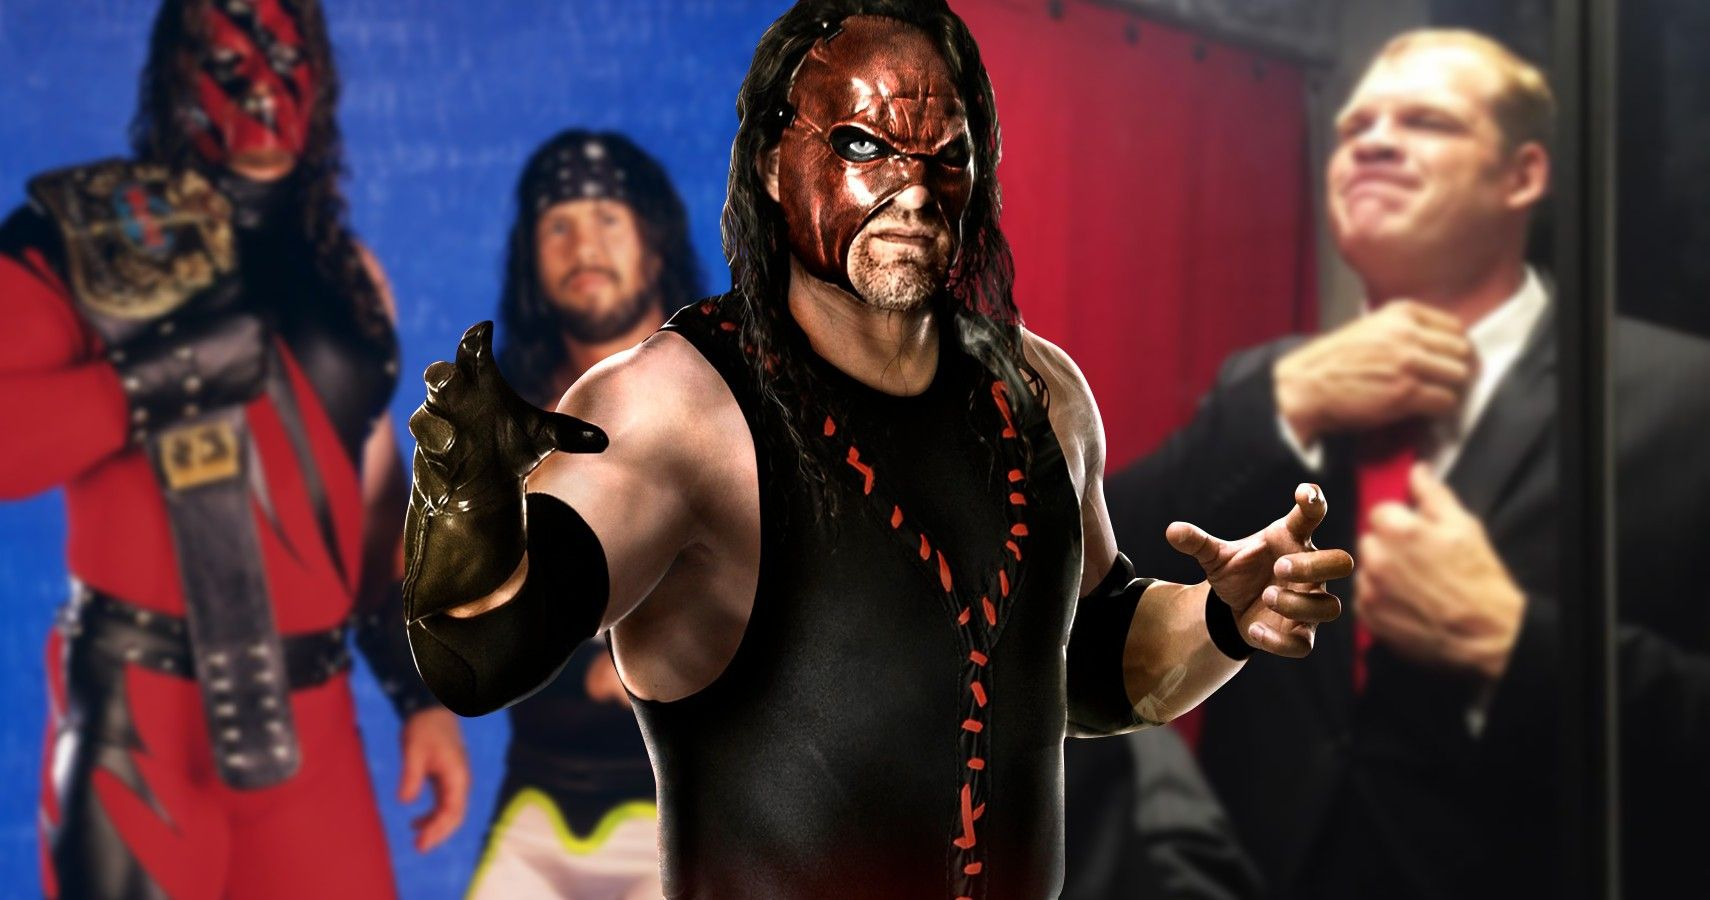 Kane: Ranking All Of His Gimmicks, From Worst To Best